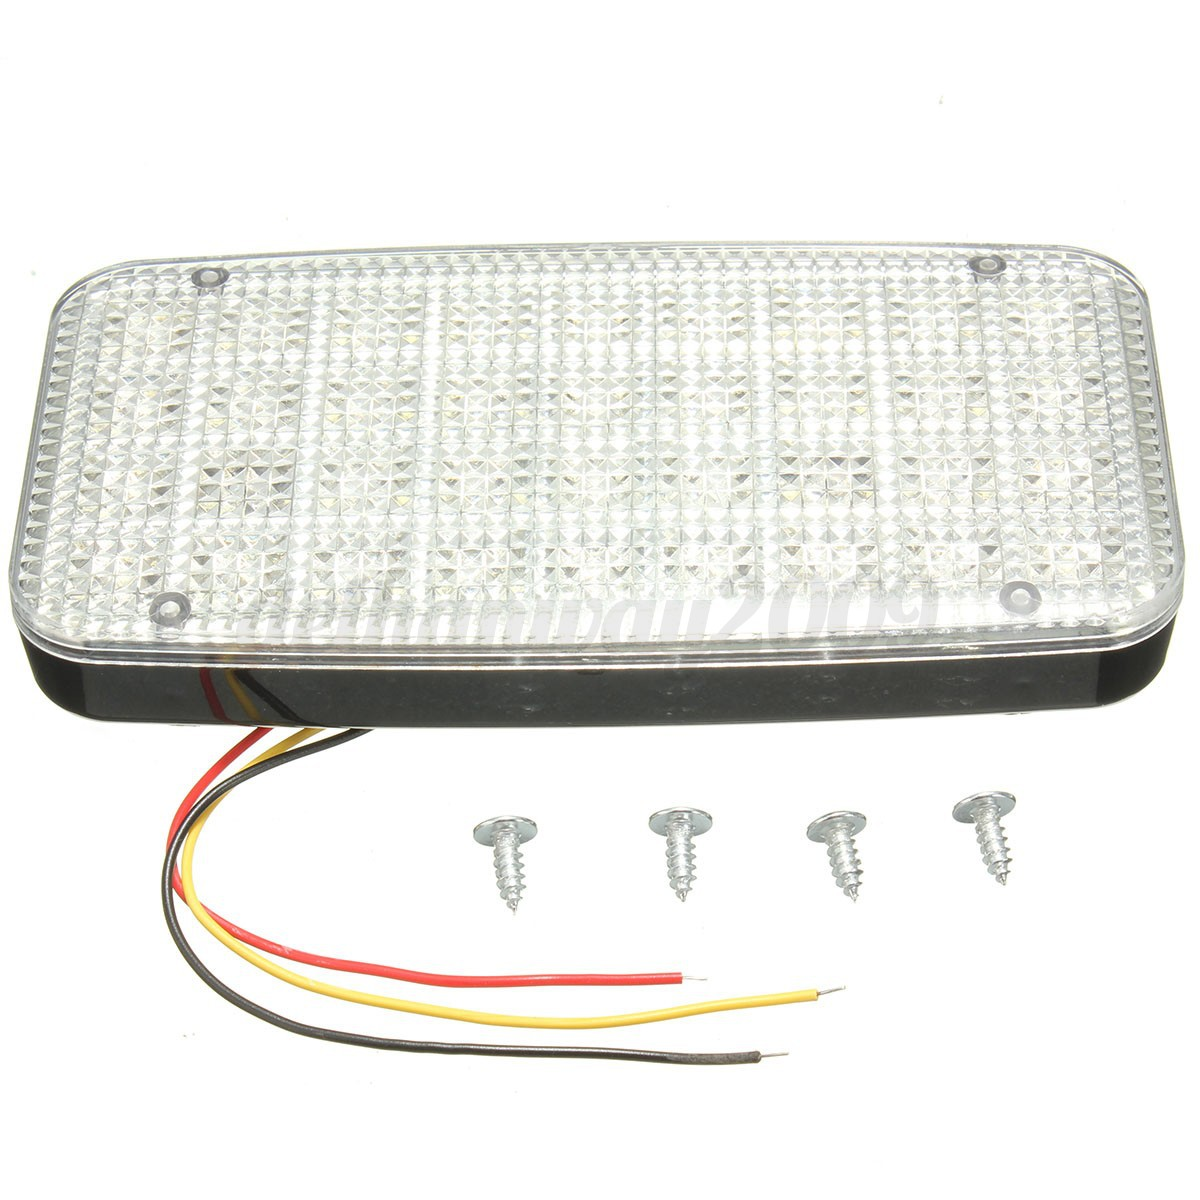 12v 36 white led ceiling dome roof interior light lamp for car auto van vehicle. Black Bedroom Furniture Sets. Home Design Ideas